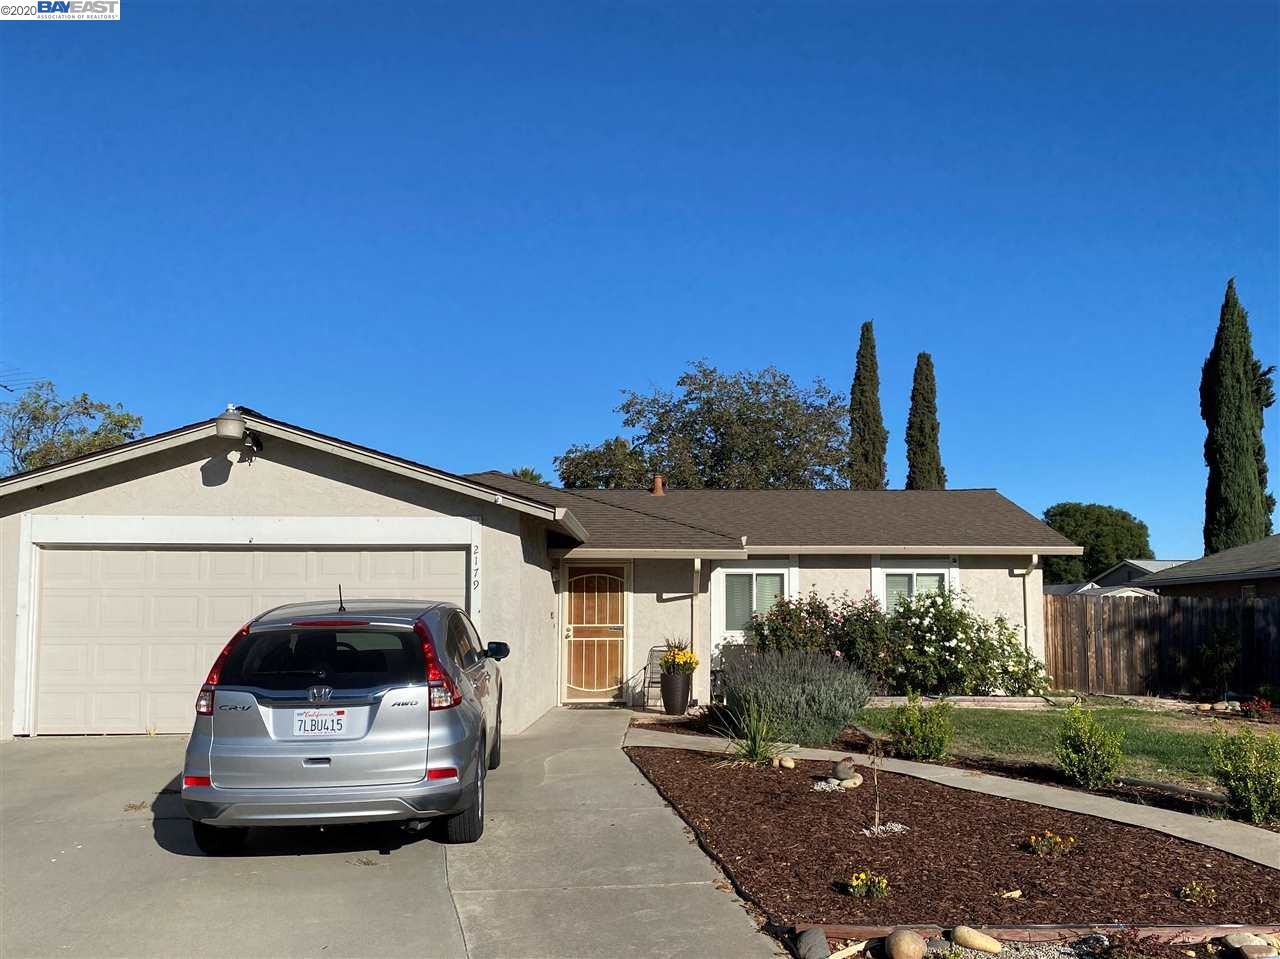 Photo of 2179 Bluebell Dr, LIVERMORE, CA 94551 (MLS # 40926229)